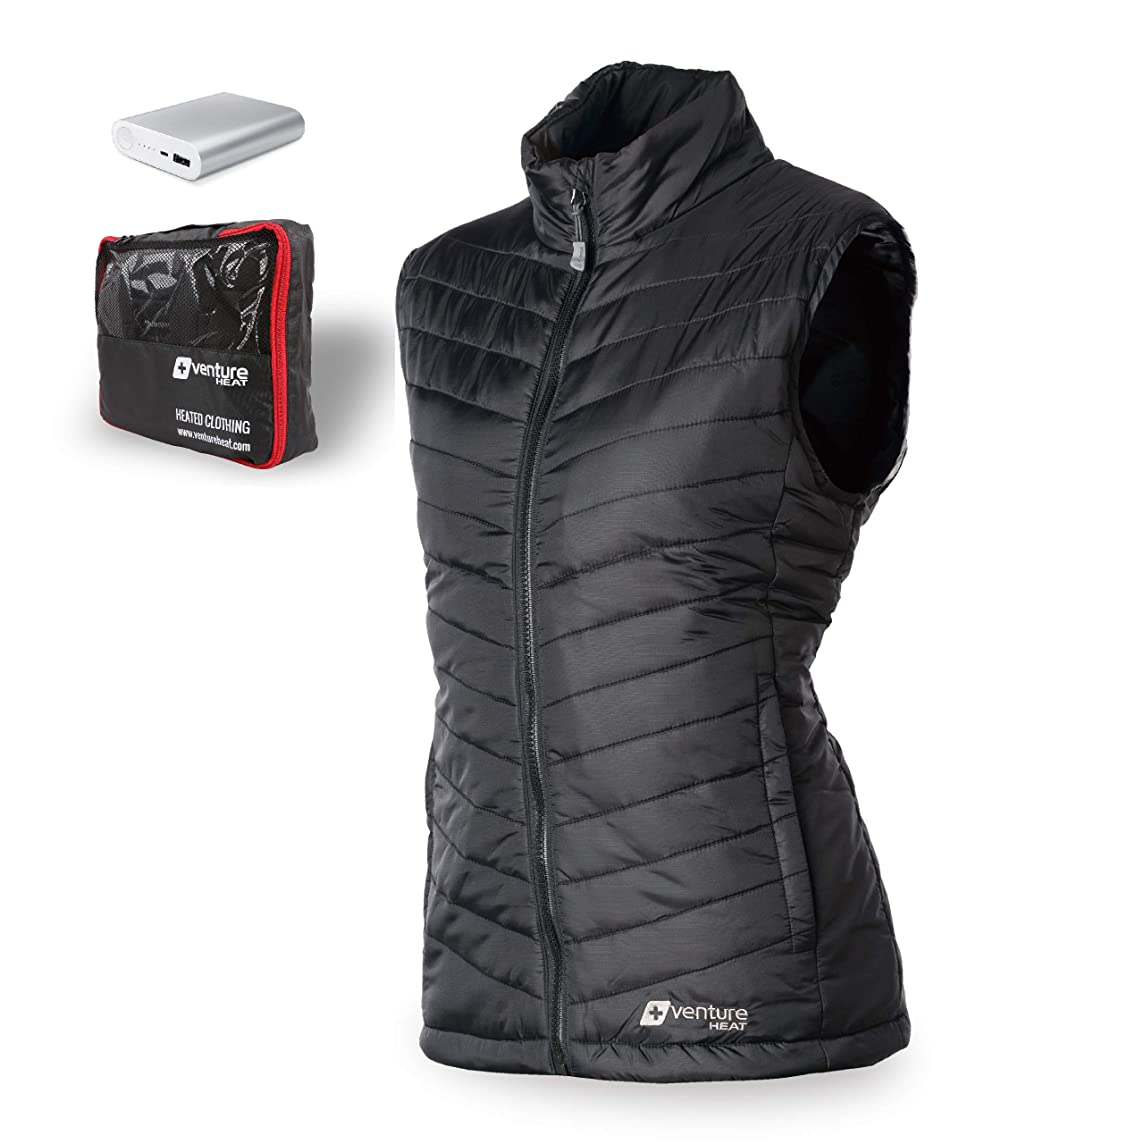 Venture Heat Women's Heated Vest with Battery 12 Hour - The Roam Puffer Heated Vest for Women